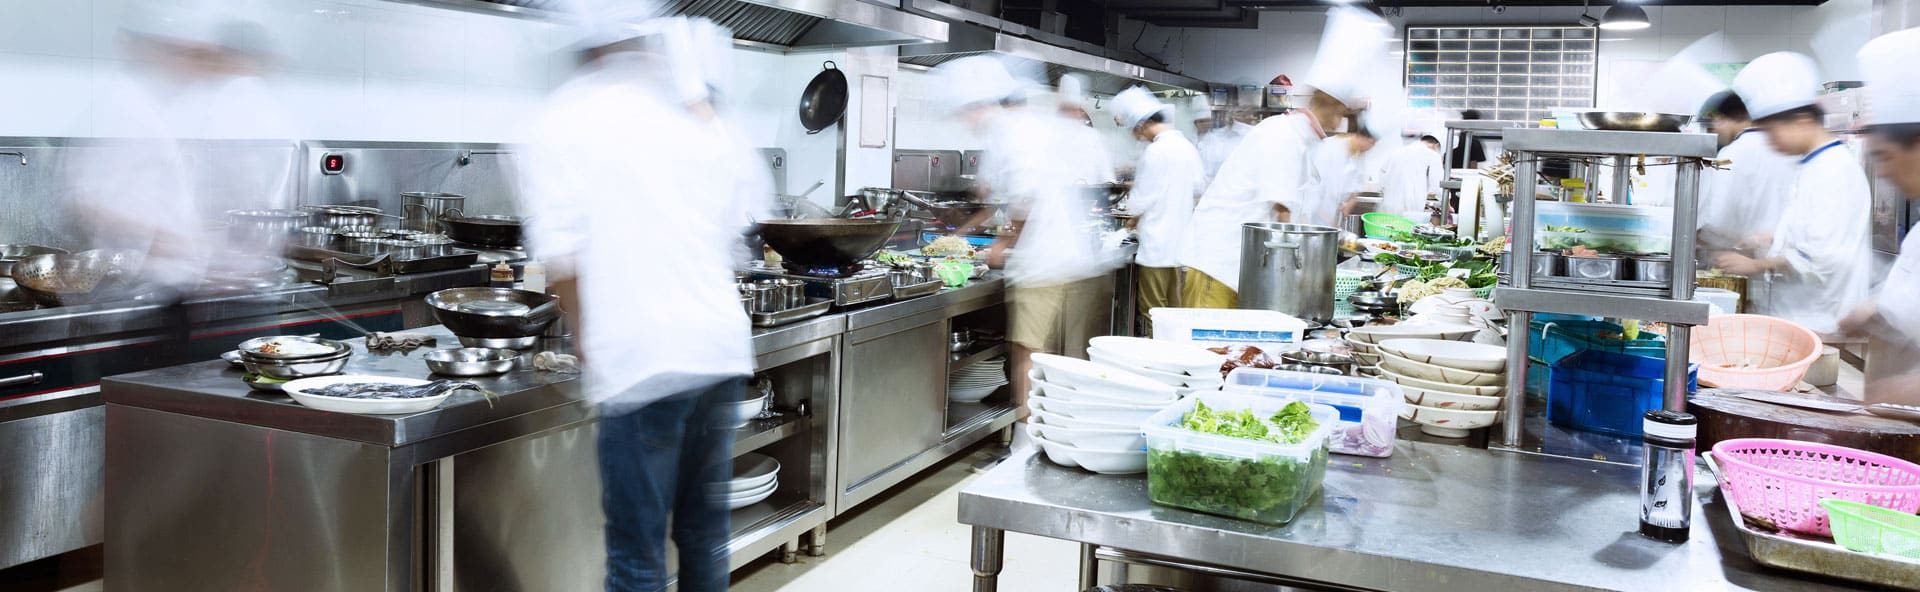 chefs busy cooking in a commercial kitchen